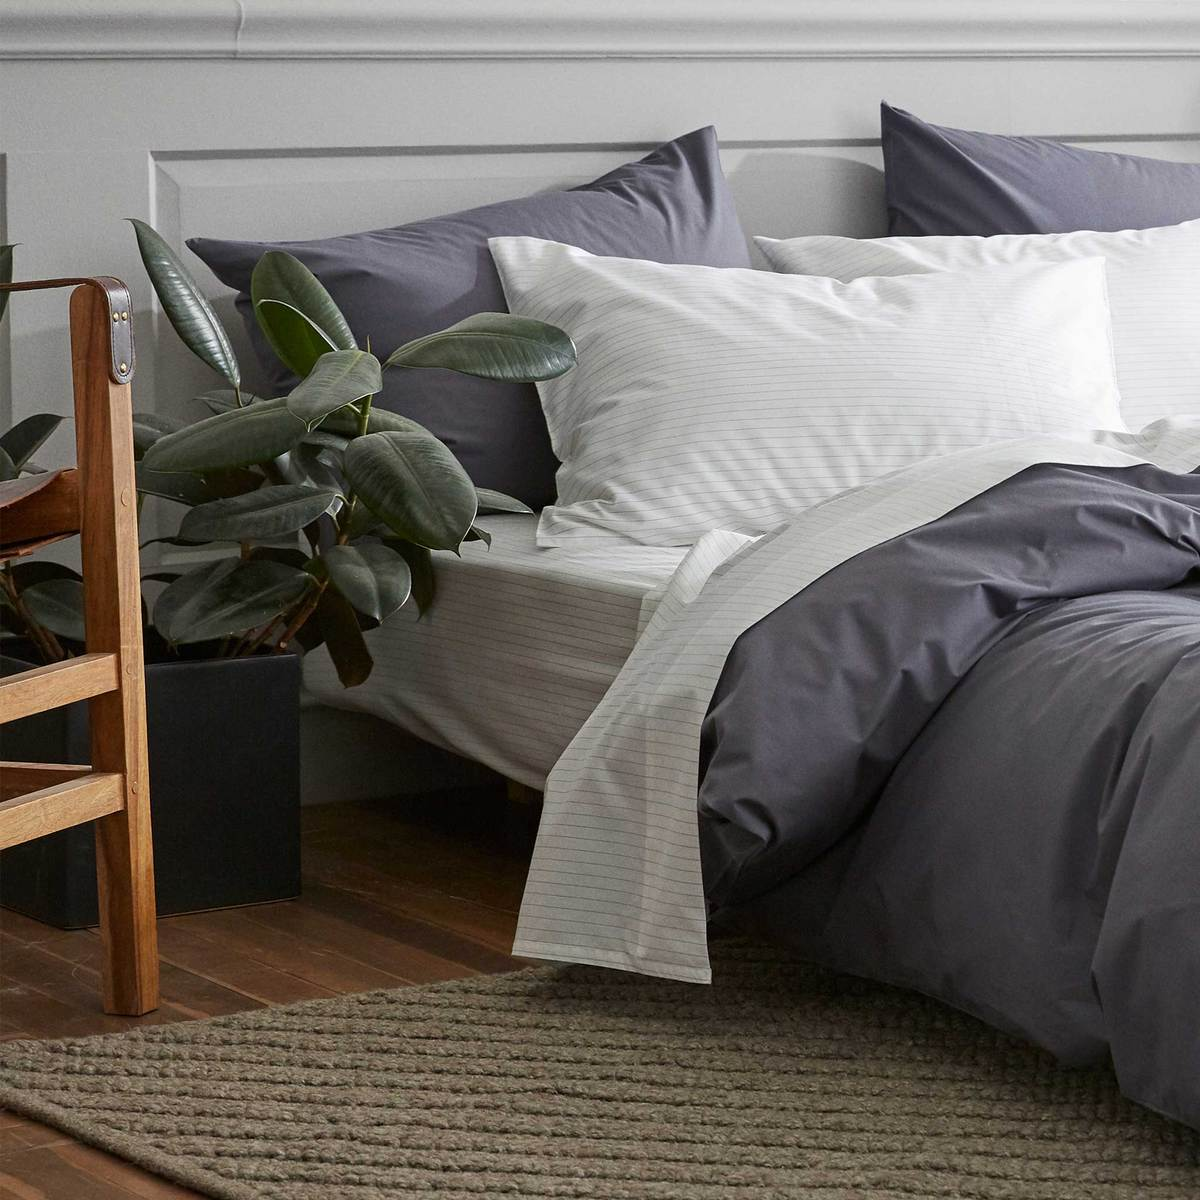 bed with white and gray sheets